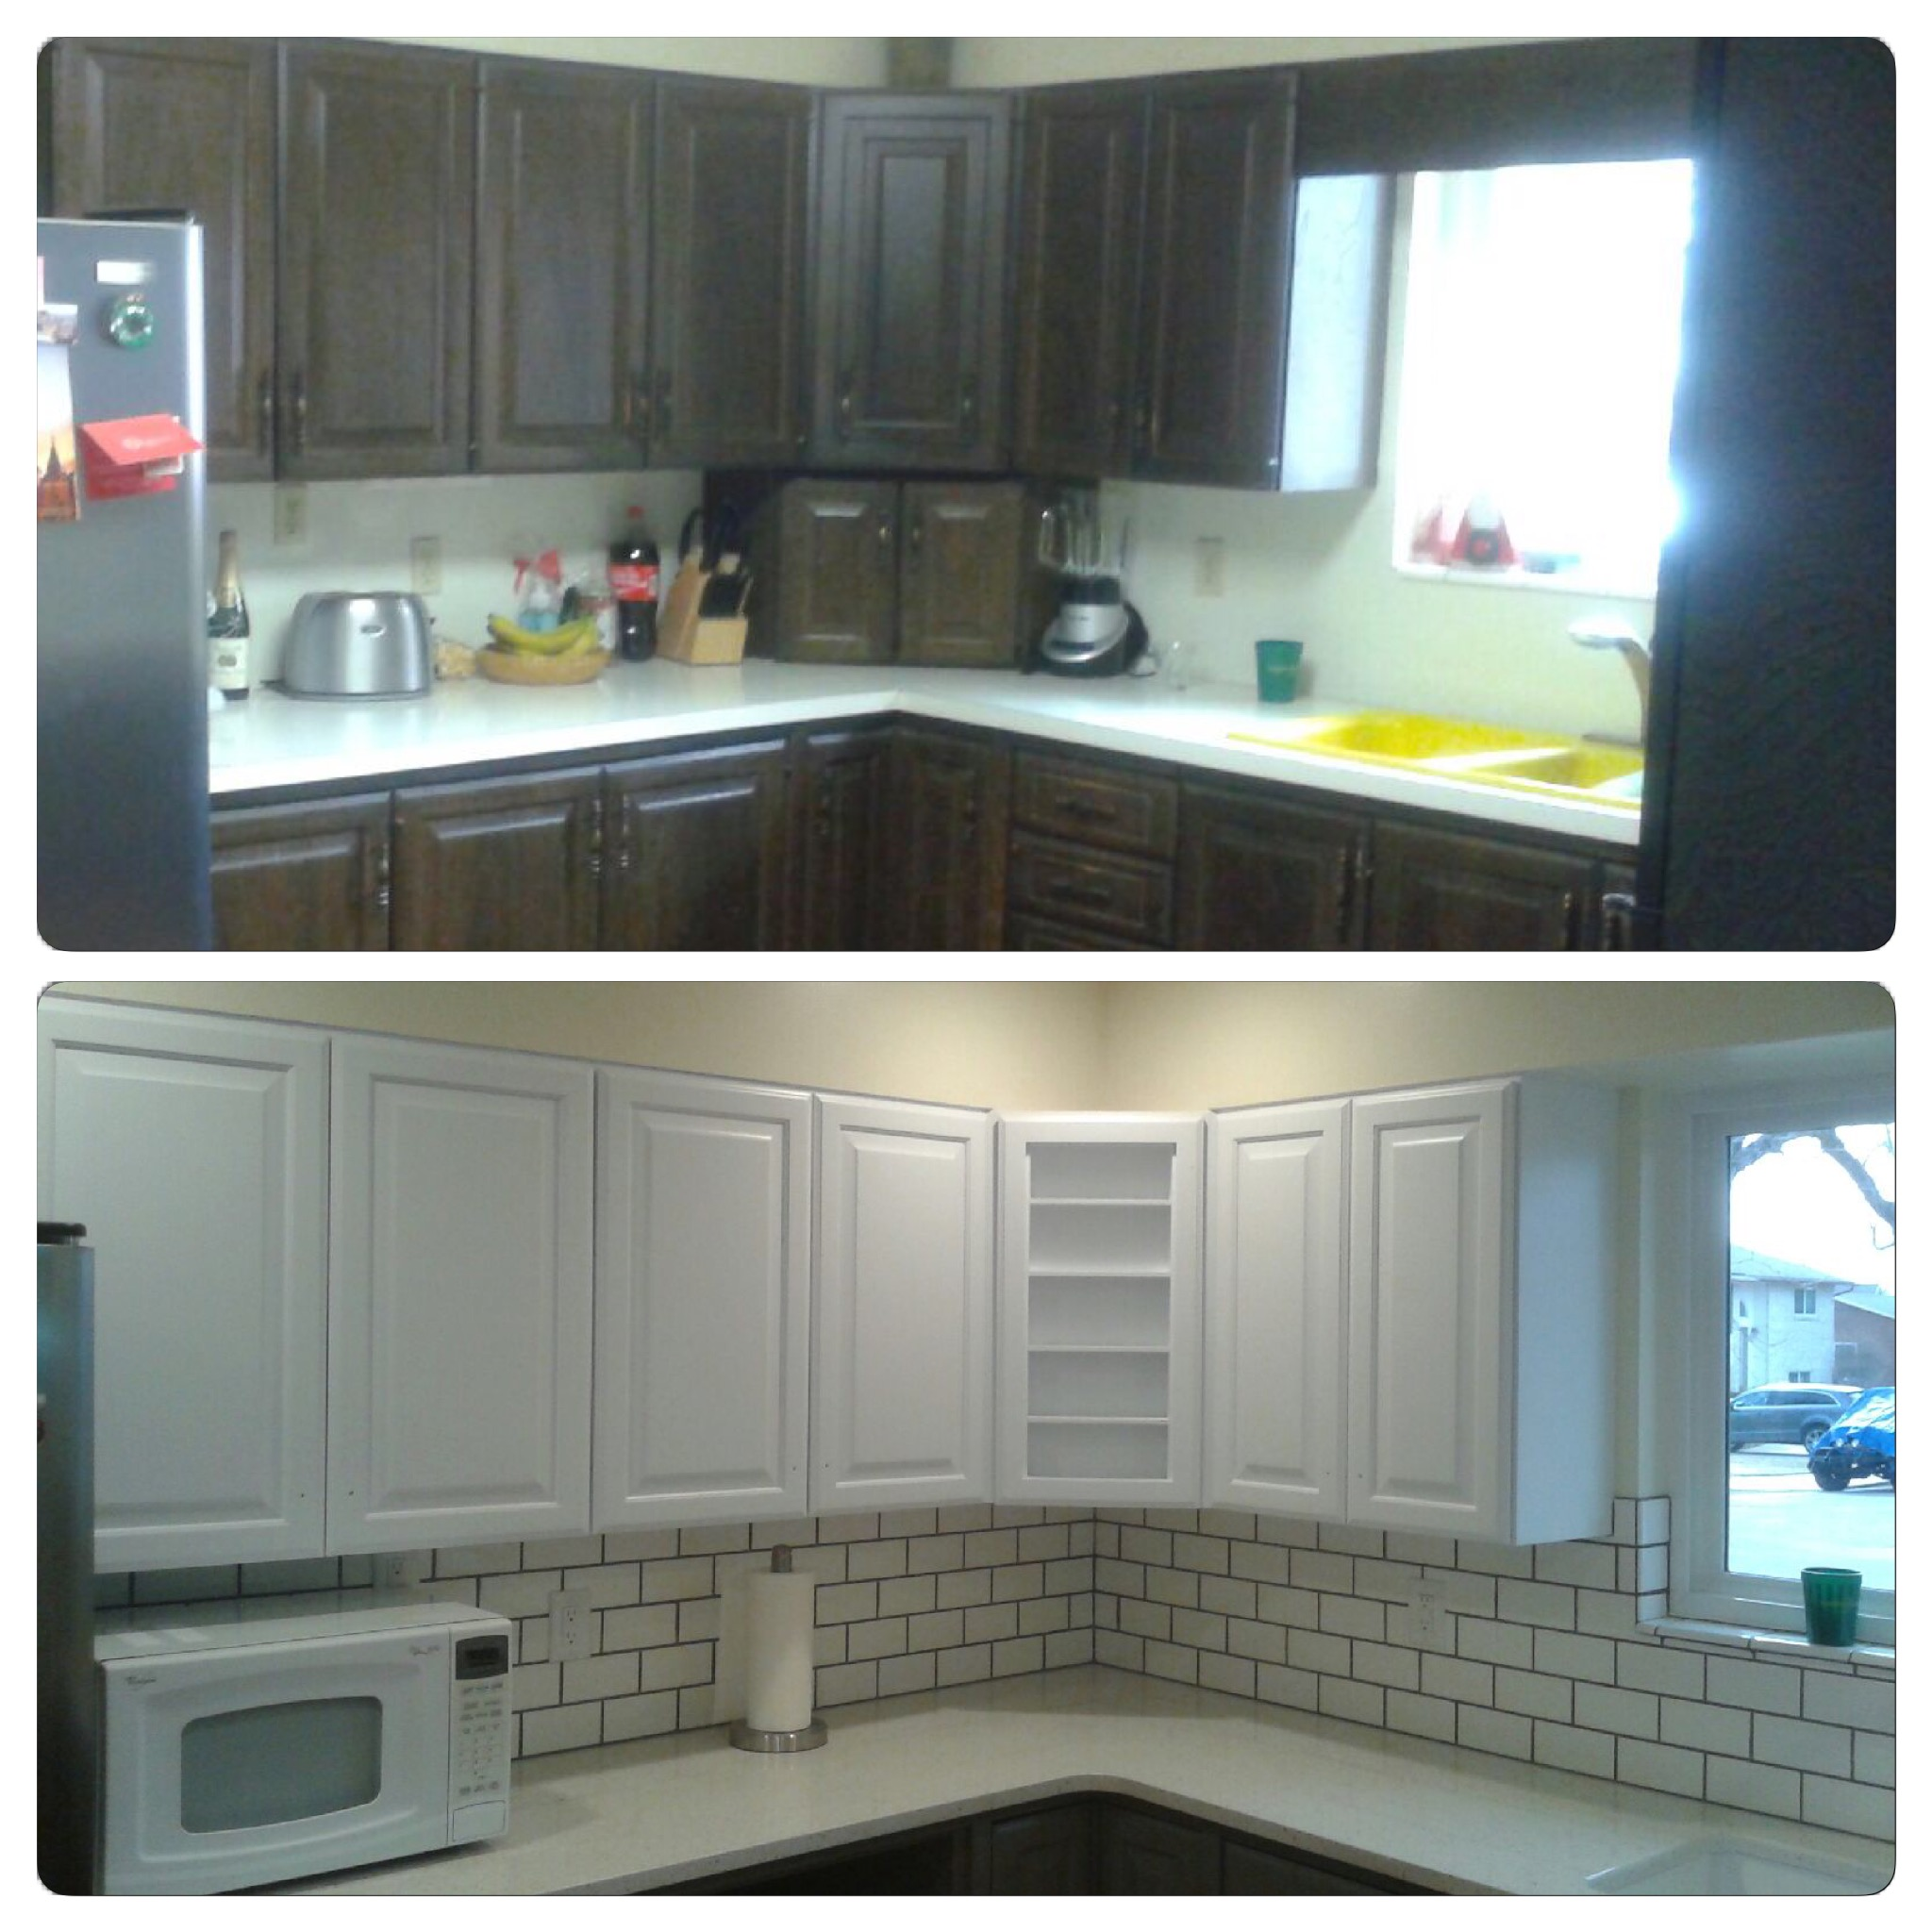 Refinishing Oak Kitchen Cabinets: Before And After Telisa's Furniture And Cabinet